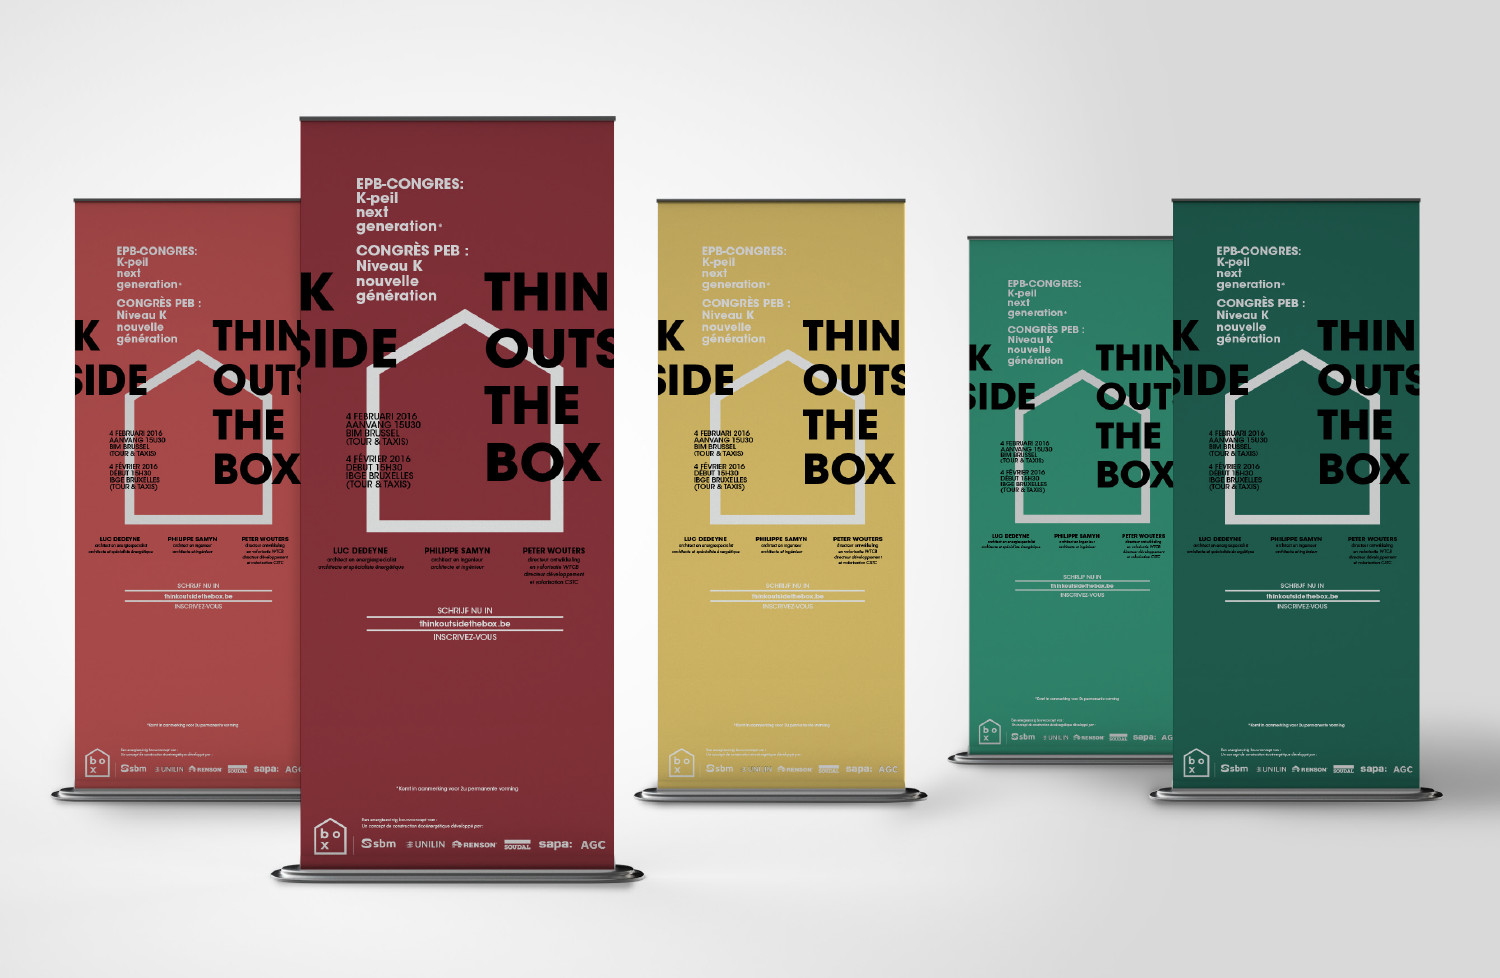 Roll-up banners The Box